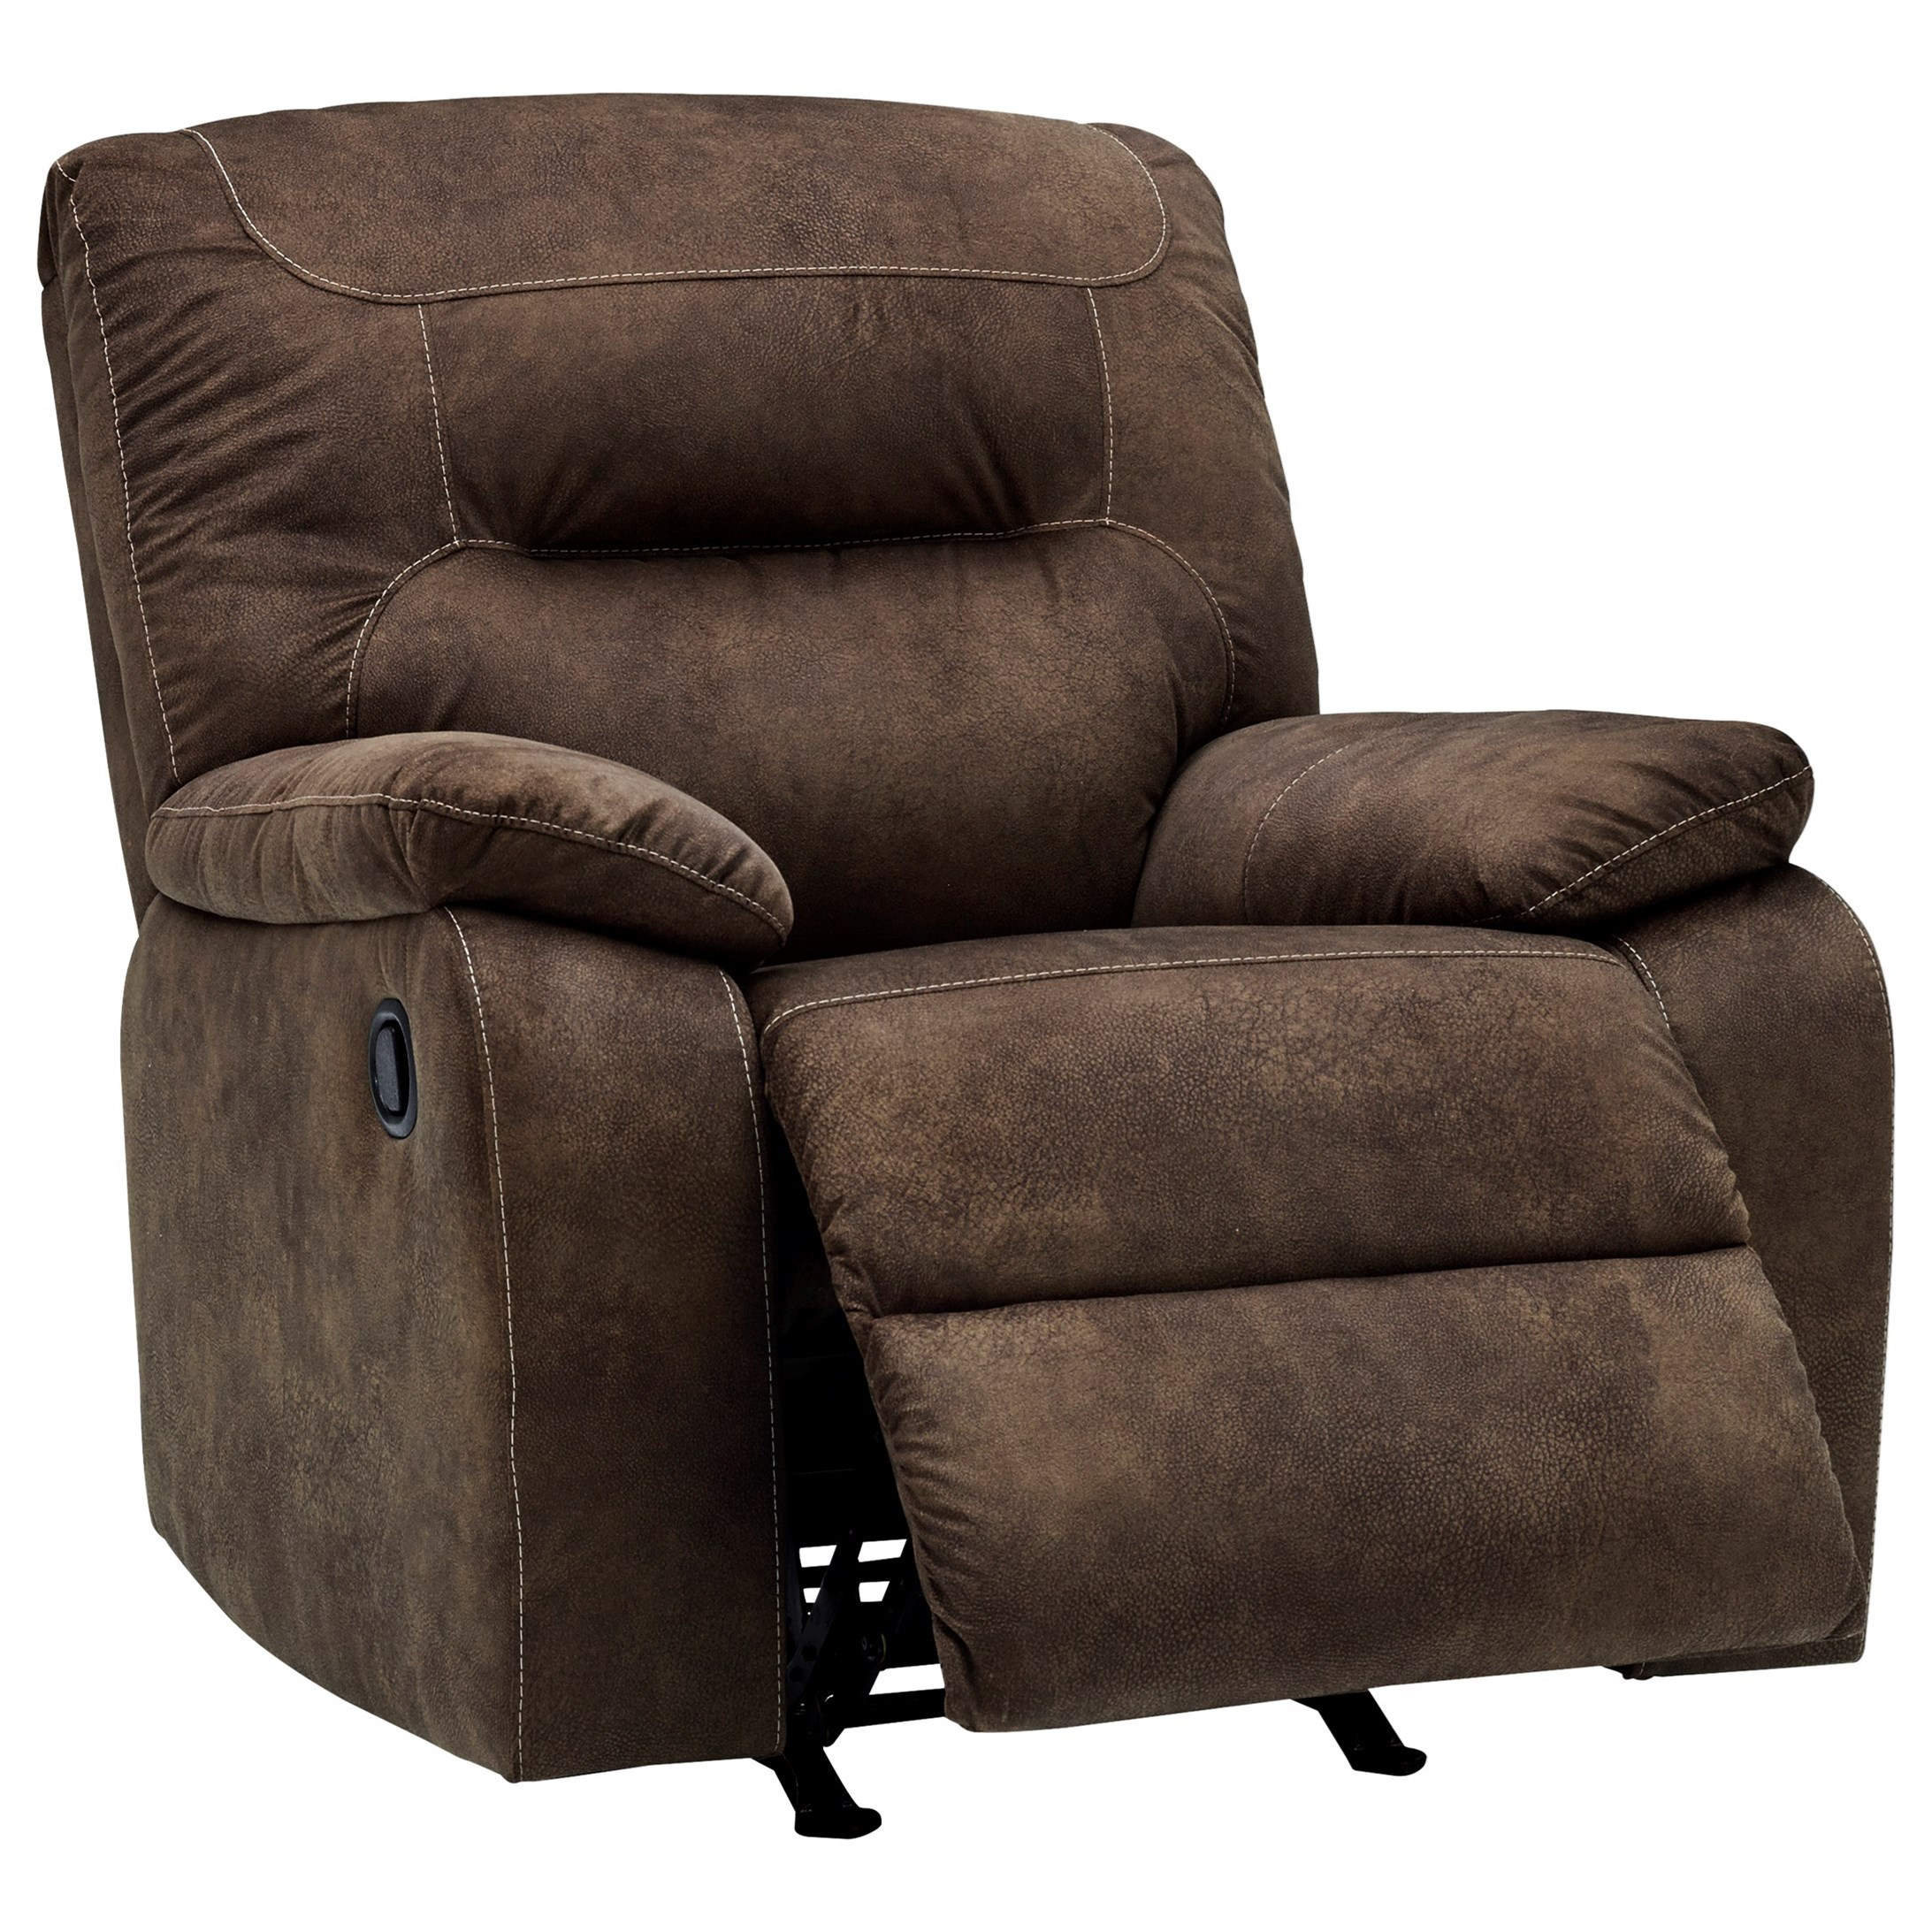 Bolzano Rocker Recliner by Signature Design by Ashley at Beck's Furniture